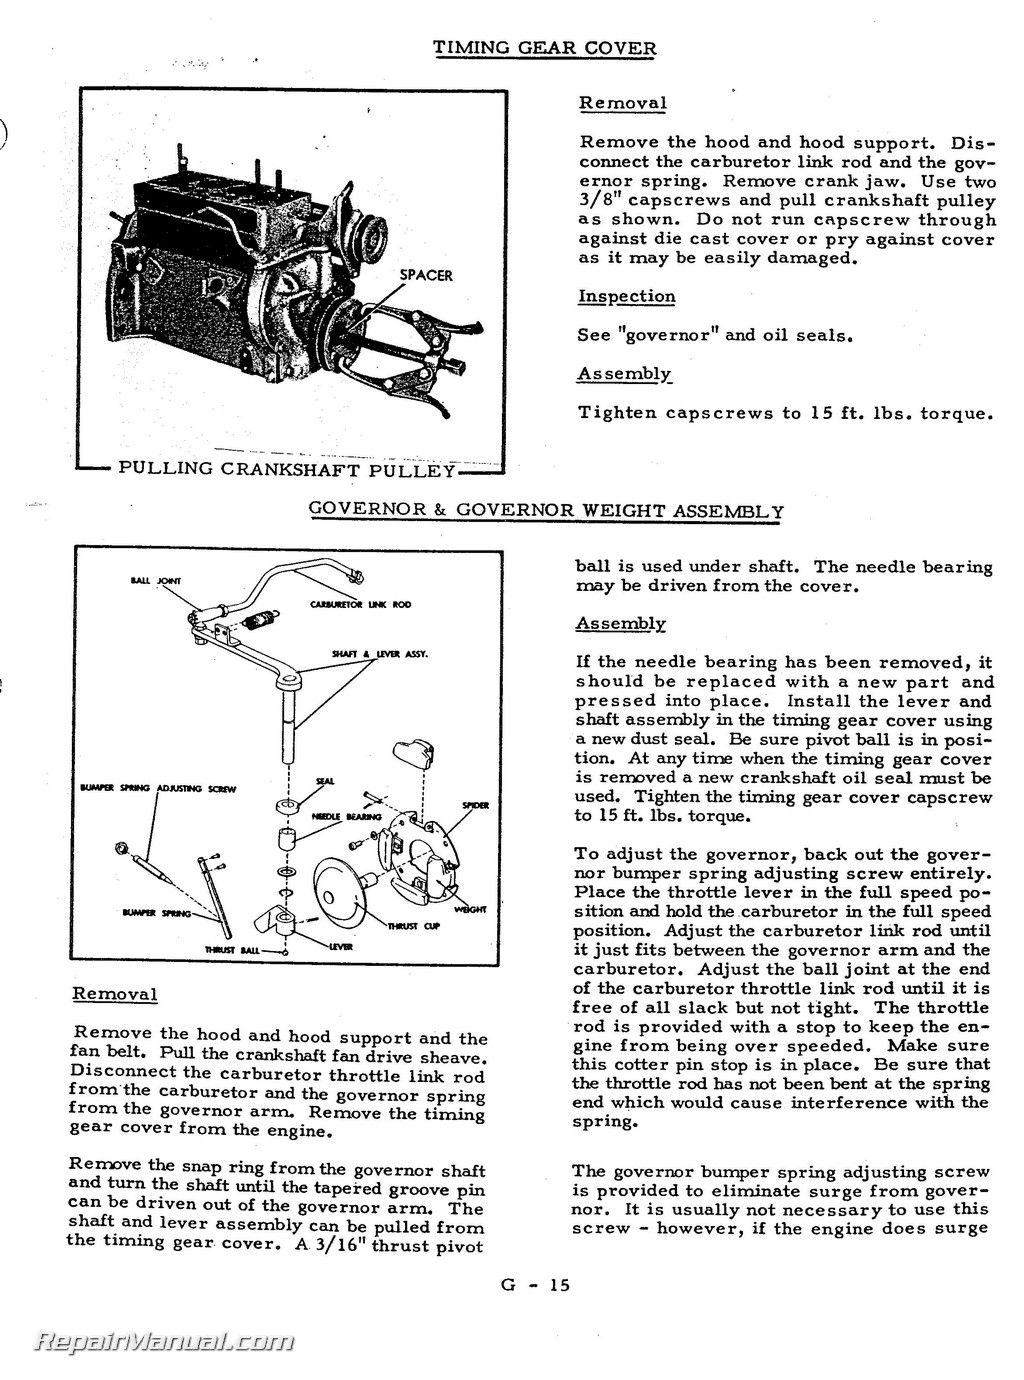 Allis Chalmers G Wiring Diagram | Wiring Diagram on john deere g lights, john deere g piston, john deere g frame, john deere g radiator, farmall a wiring diagram, john deere g tractor, allis chalmers g wiring diagram, john deere g crankshaft, john deere g engine, john deere g clutch, john deere g water pump, john deere g steering, john deere g oil filter, john deere g specifications, john deere g carburetor, john deere g parts,